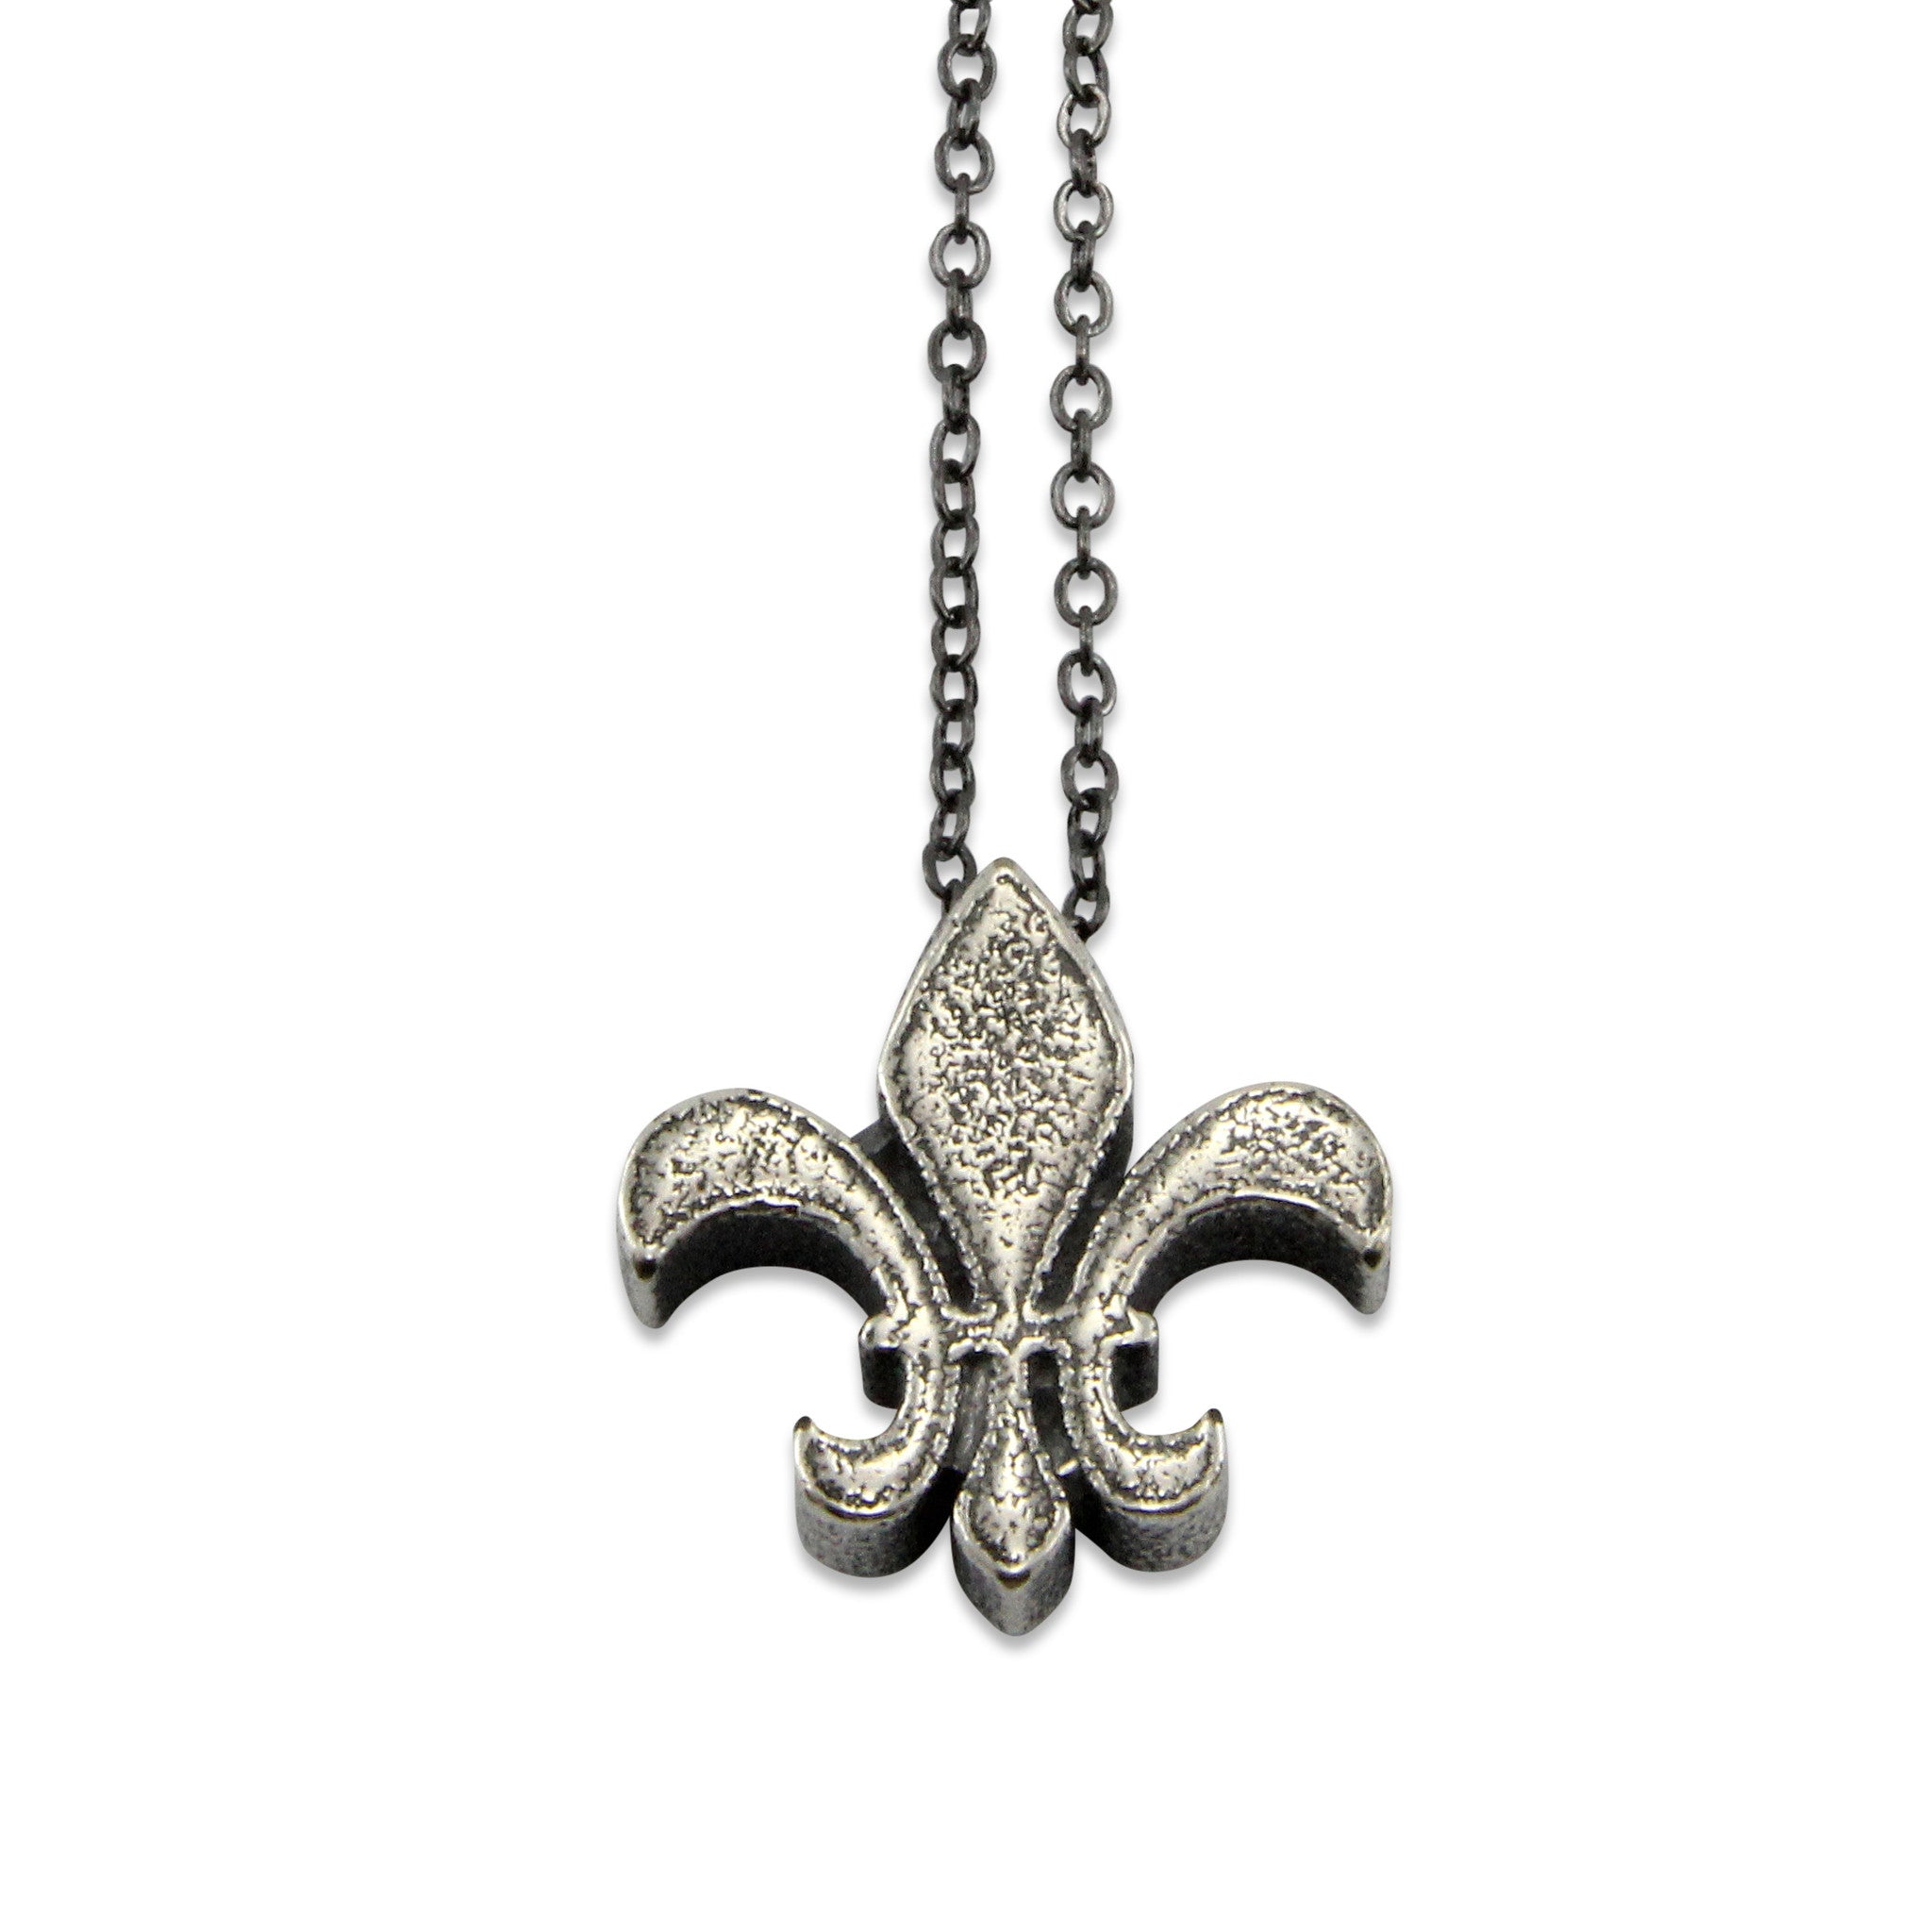 Fleur De Lis Necklace - Gwen Delicious Jewelry Designs